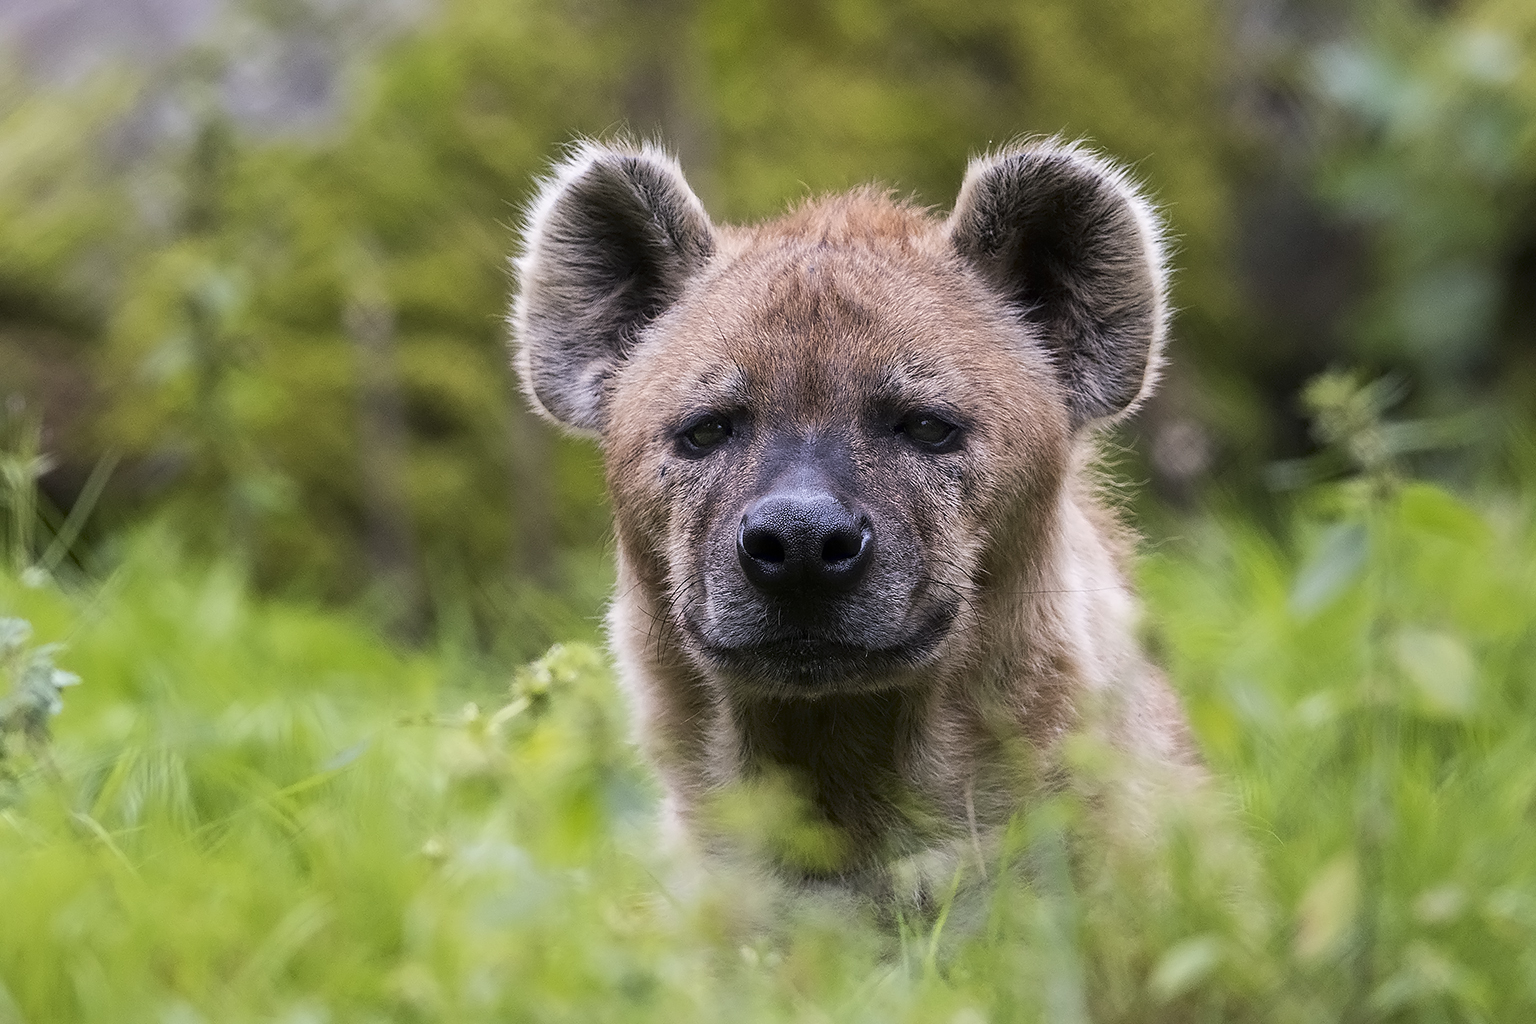 Spotted Hyena preperations